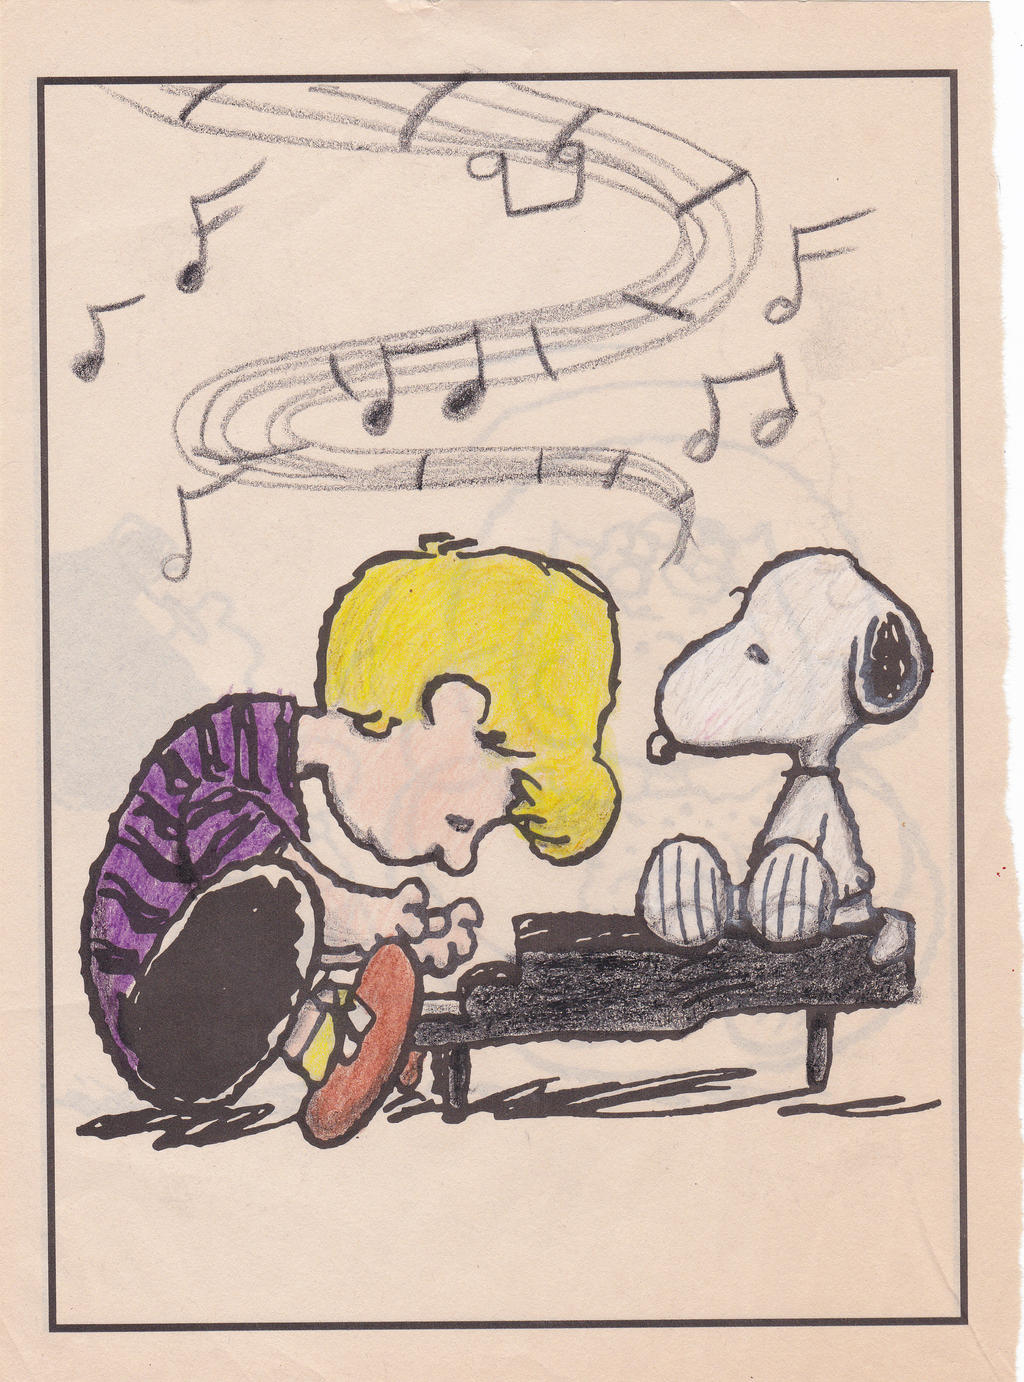 schroeder and snoopy coloring page my style by aspiringtobelikehe